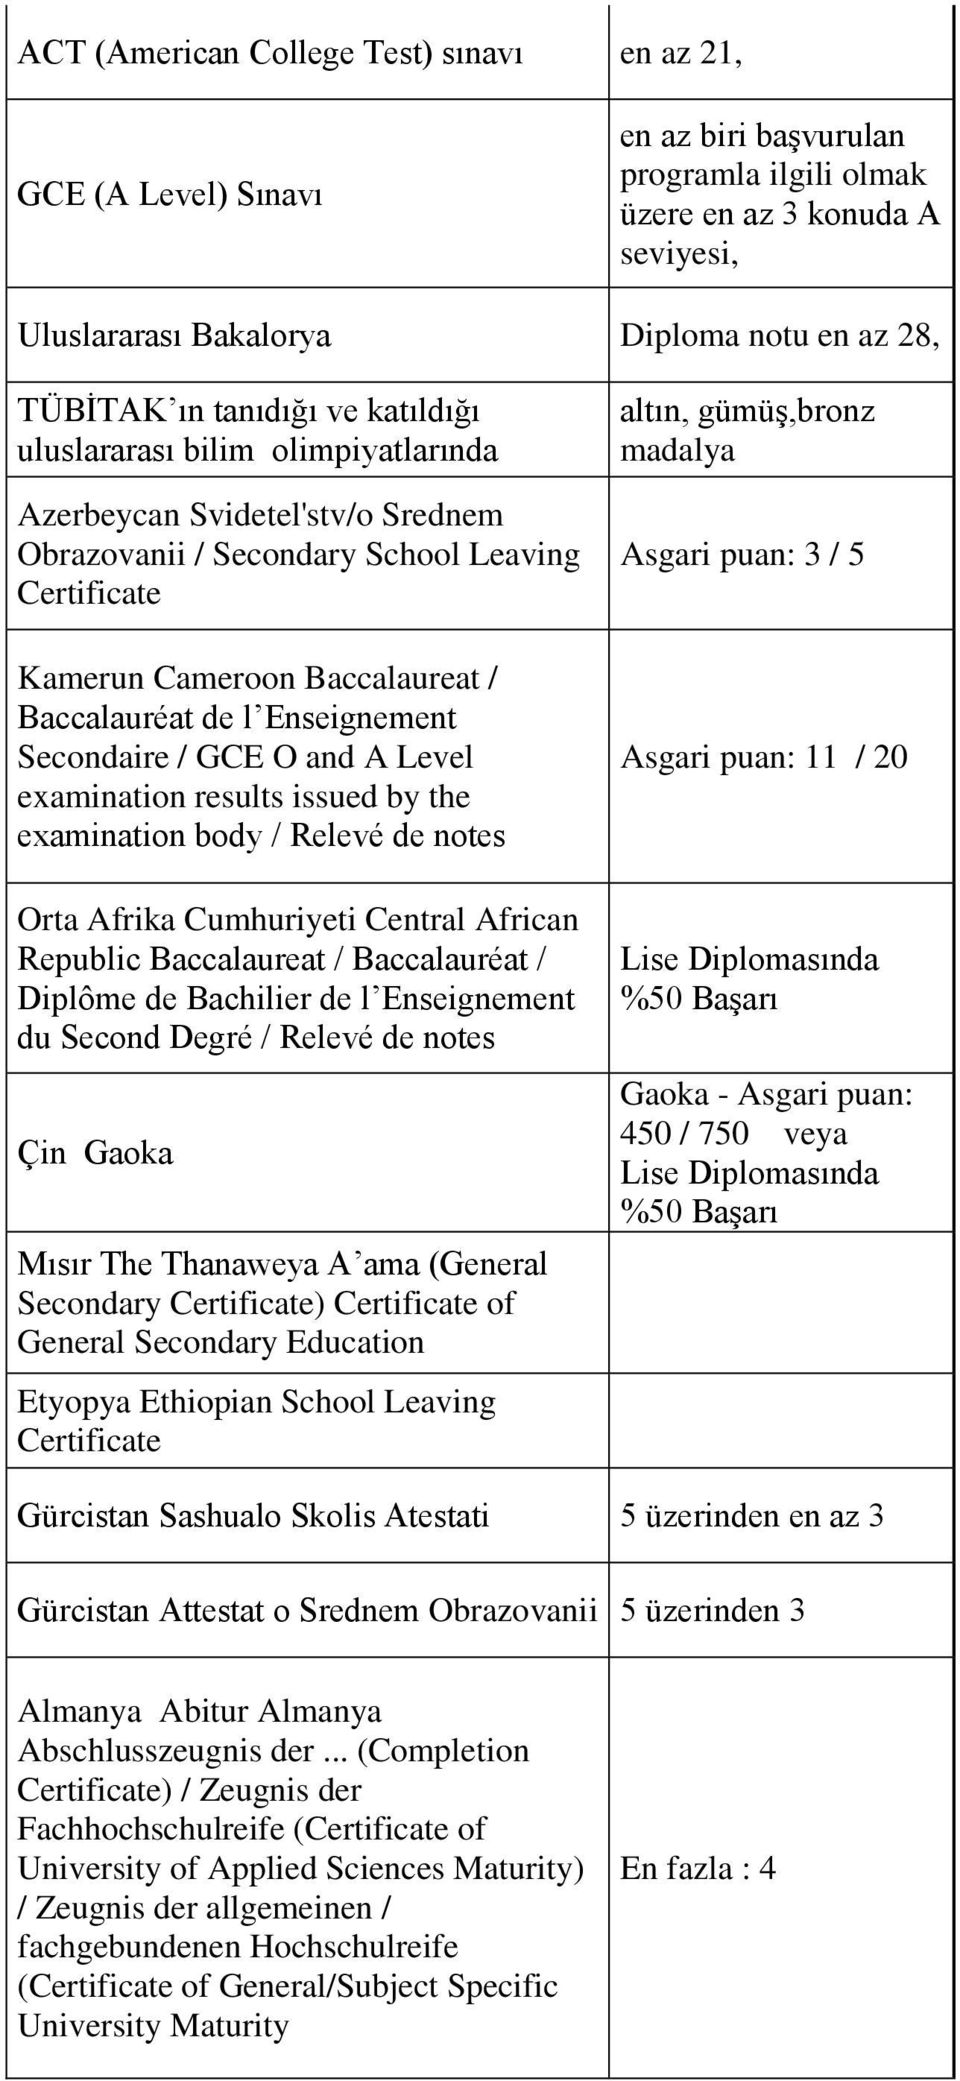 Enseignement Secondaire / GCE O and A Level examination results issued by the examination body / Relevé de notes Orta Afrika Cumhuriyeti Central African Republic Baccalaureat / Baccalauréat / Diplôme